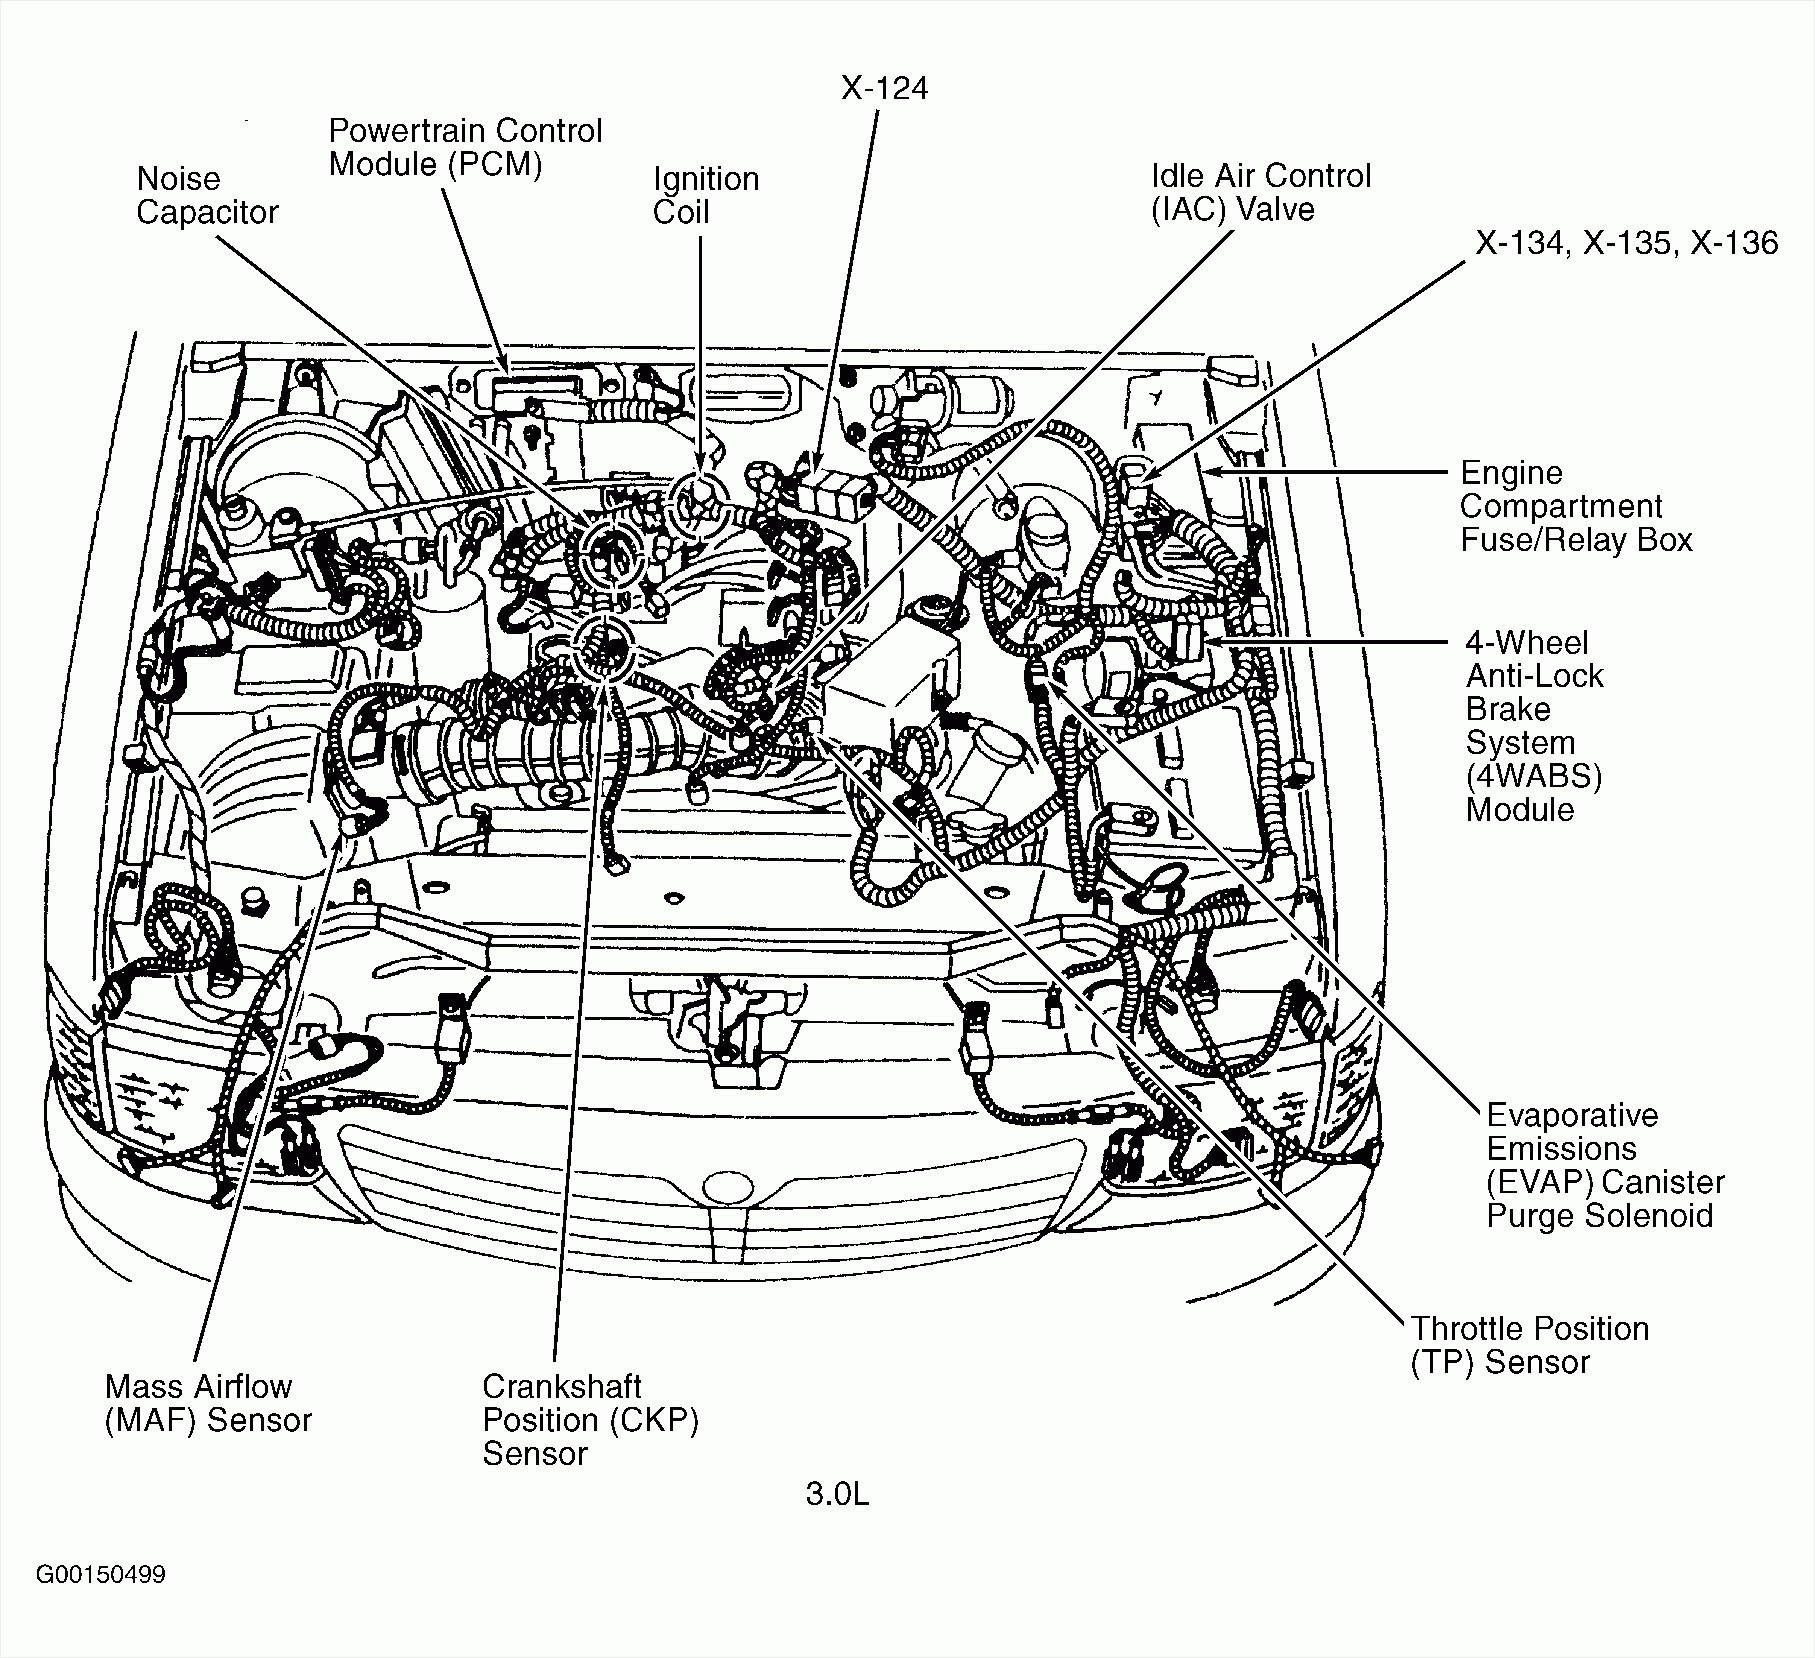 94 ford Ranger Engine Diagram ford 2 0 Engine Diagram Wiring Diagram General Of 94 ford Ranger Engine Diagram Mercruiser 5 0 Wiring Diagram ford Wiring Diagram Pass